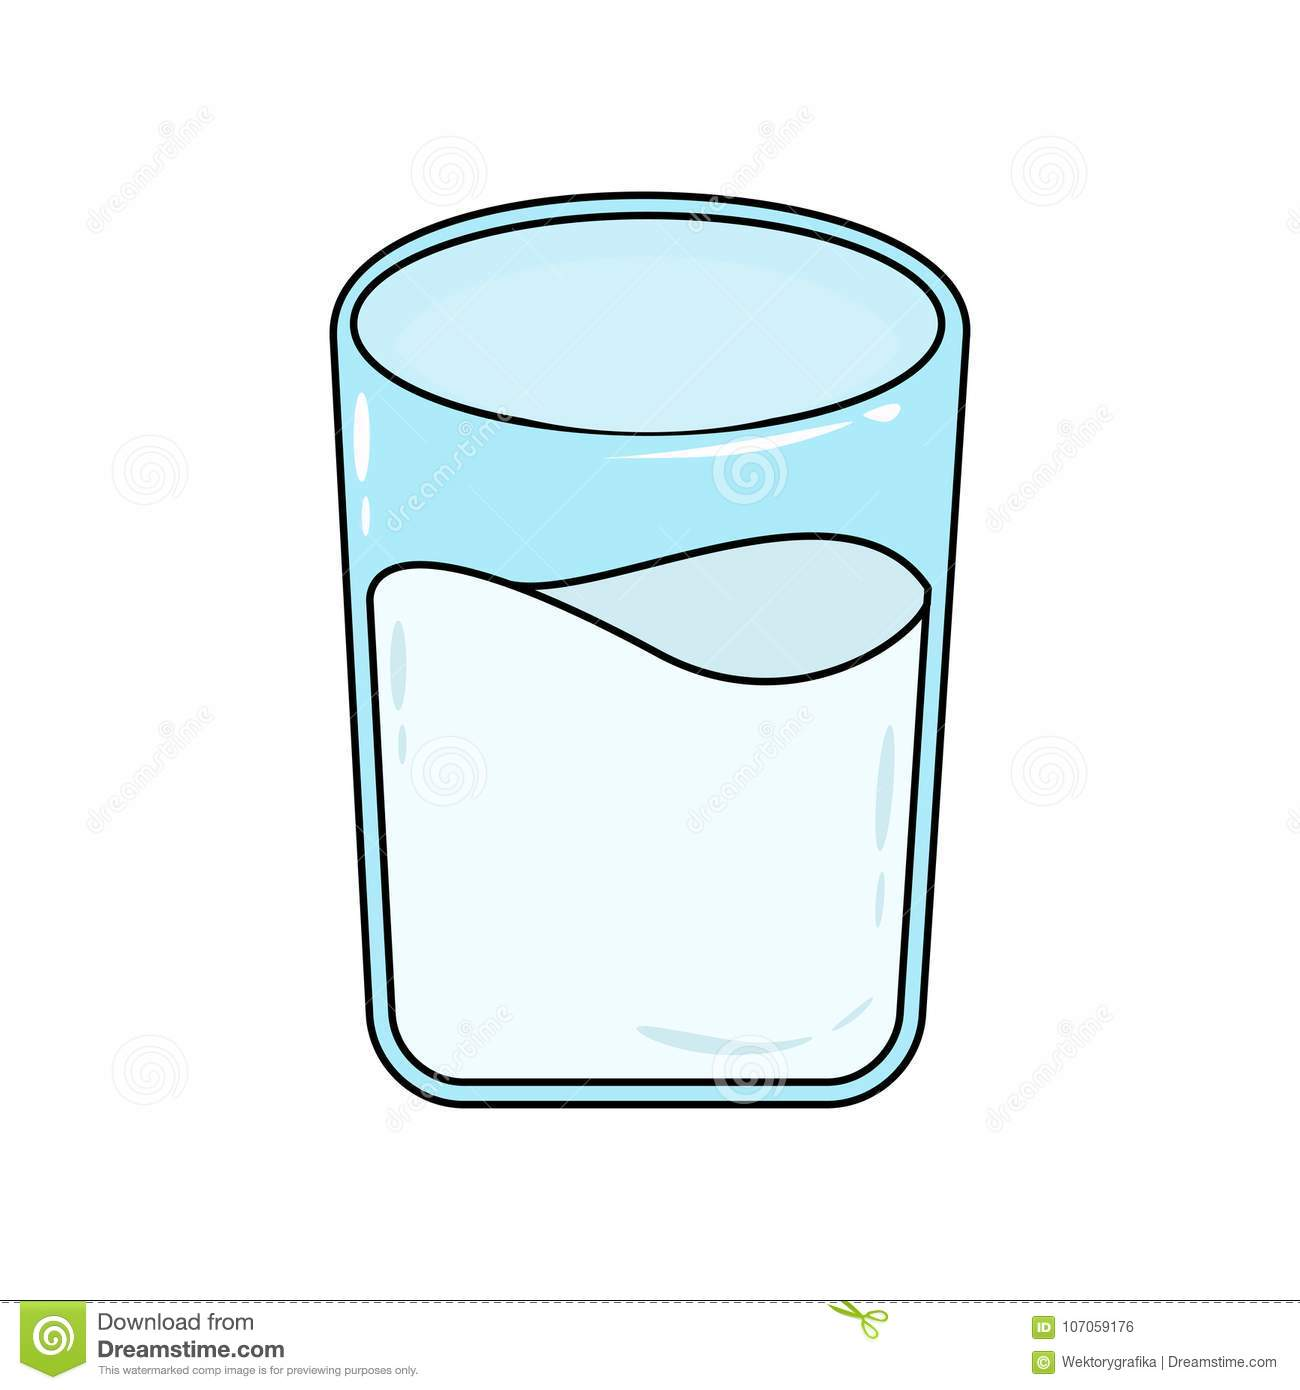 Glass Of Milk Cartoon Isolated On White Background Stock Vector.